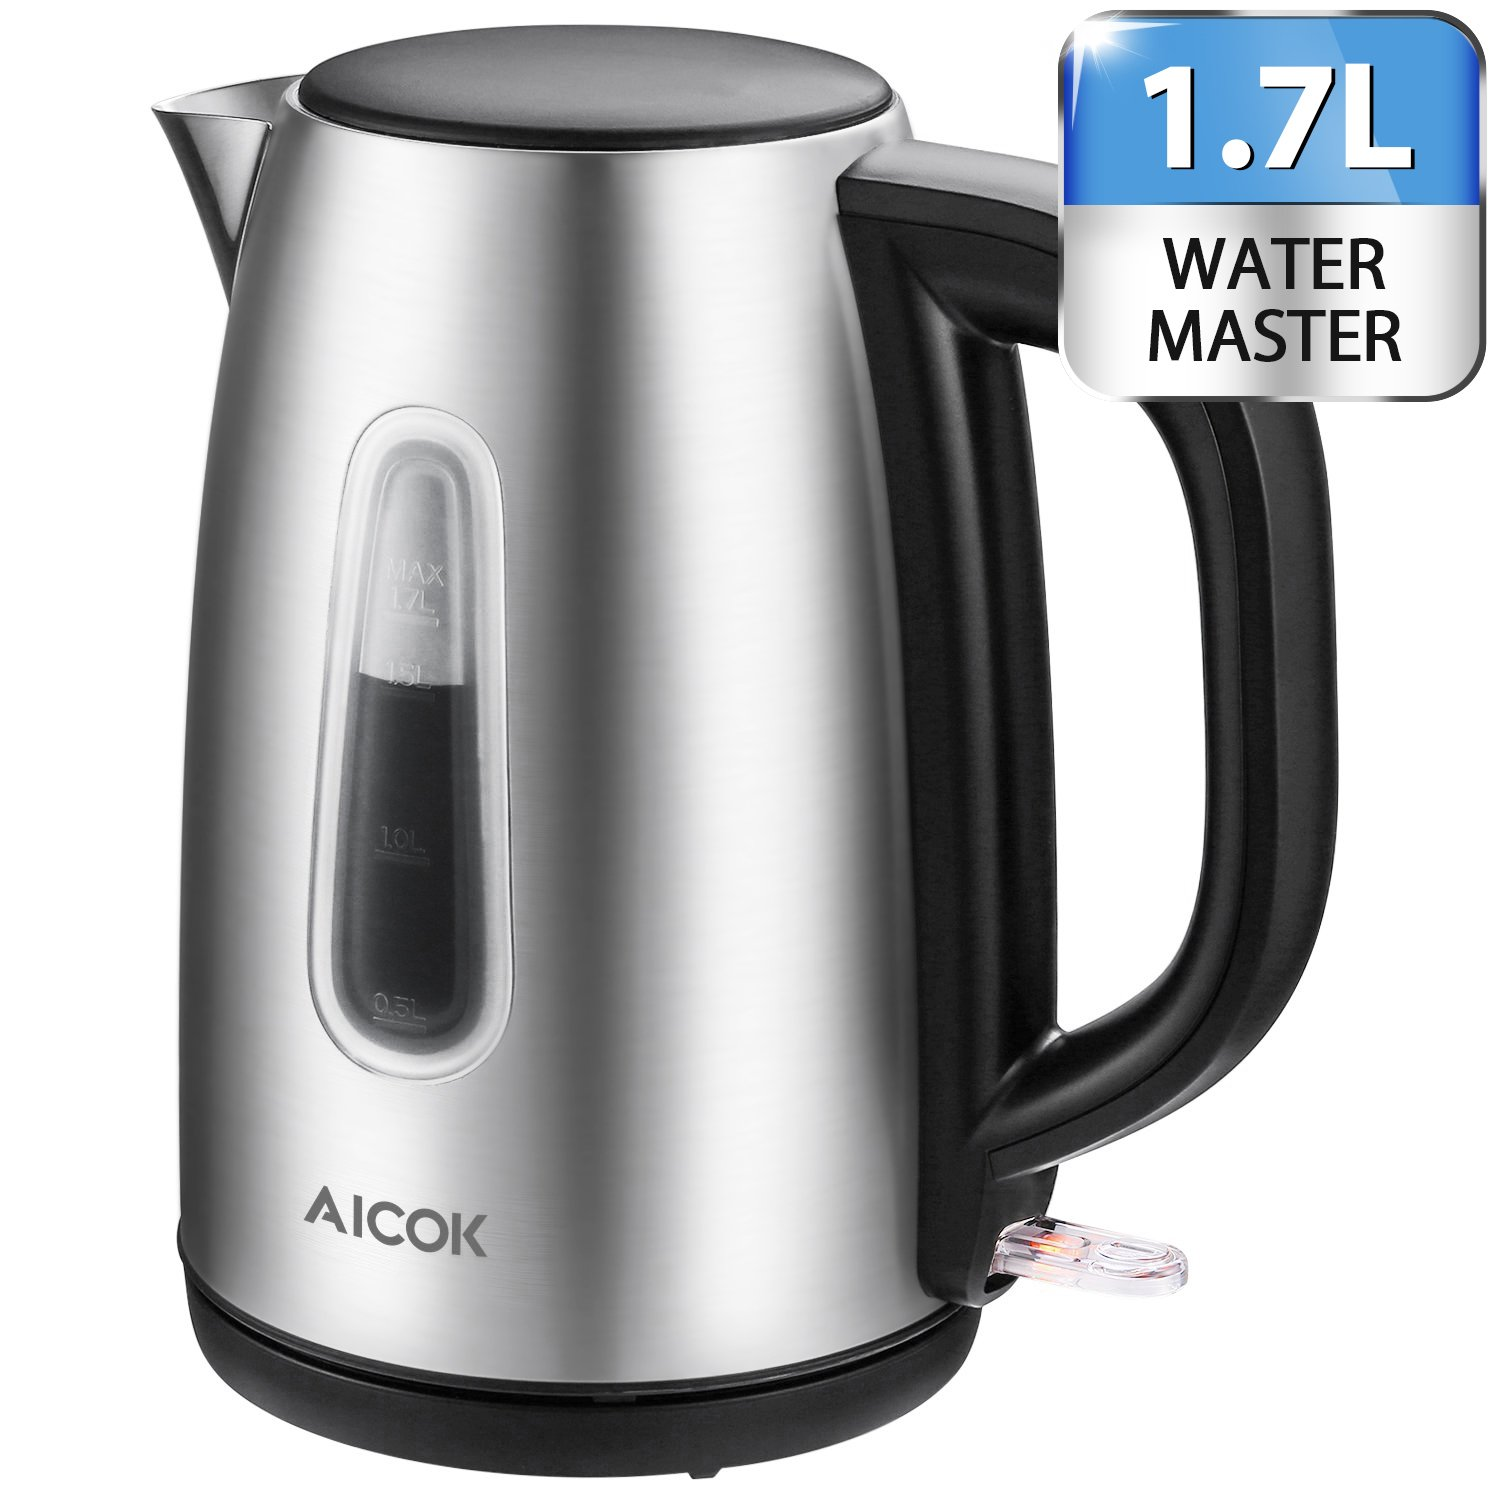 Electric Kettle 1.7L Stainless Steel Tea Kettle with British Strix Control, 1500W Fast Boiling Water Kettle, Hot Water Kettle Electric with Auto Shut-Off, BPA-Free By Aicok by AICOK